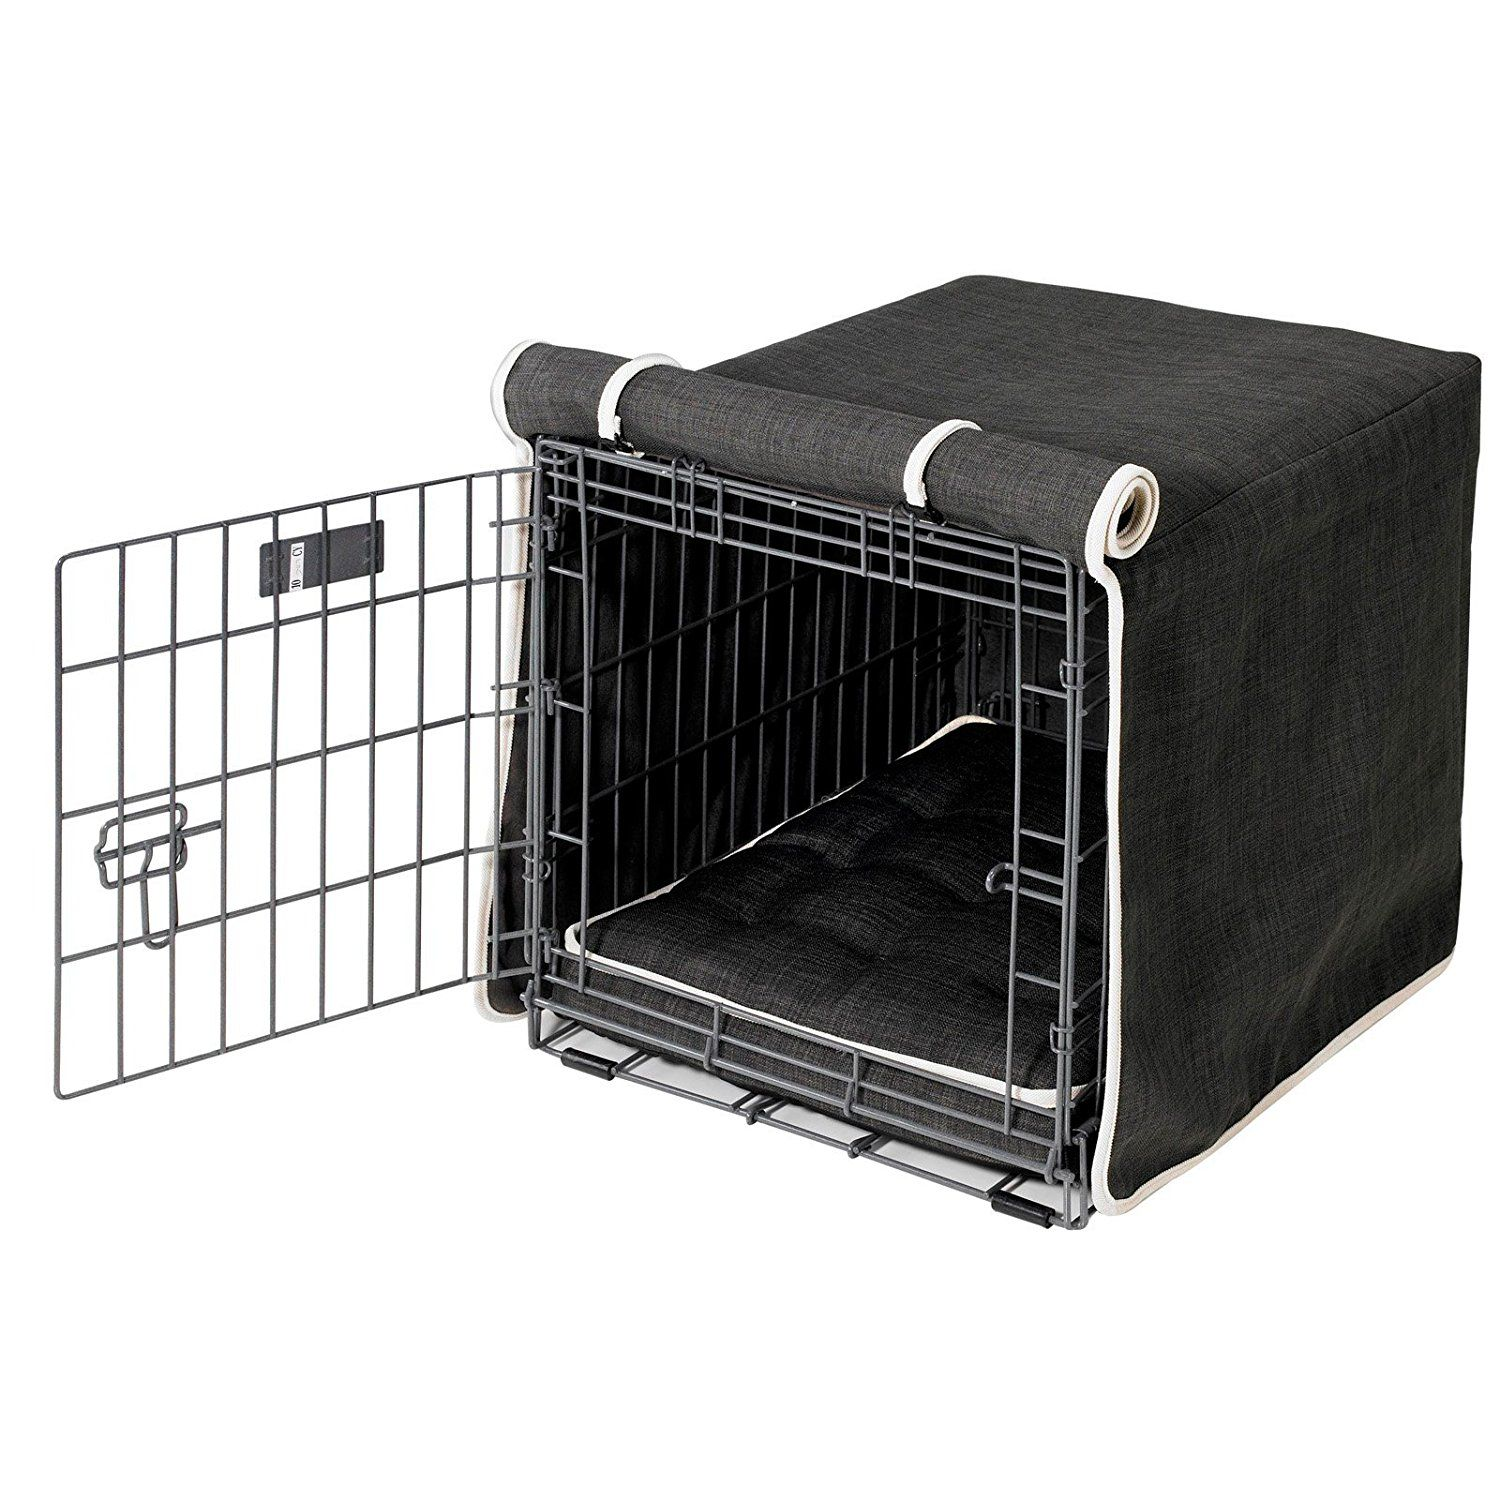 bowsers luxury pet crate cover insider s special review you can